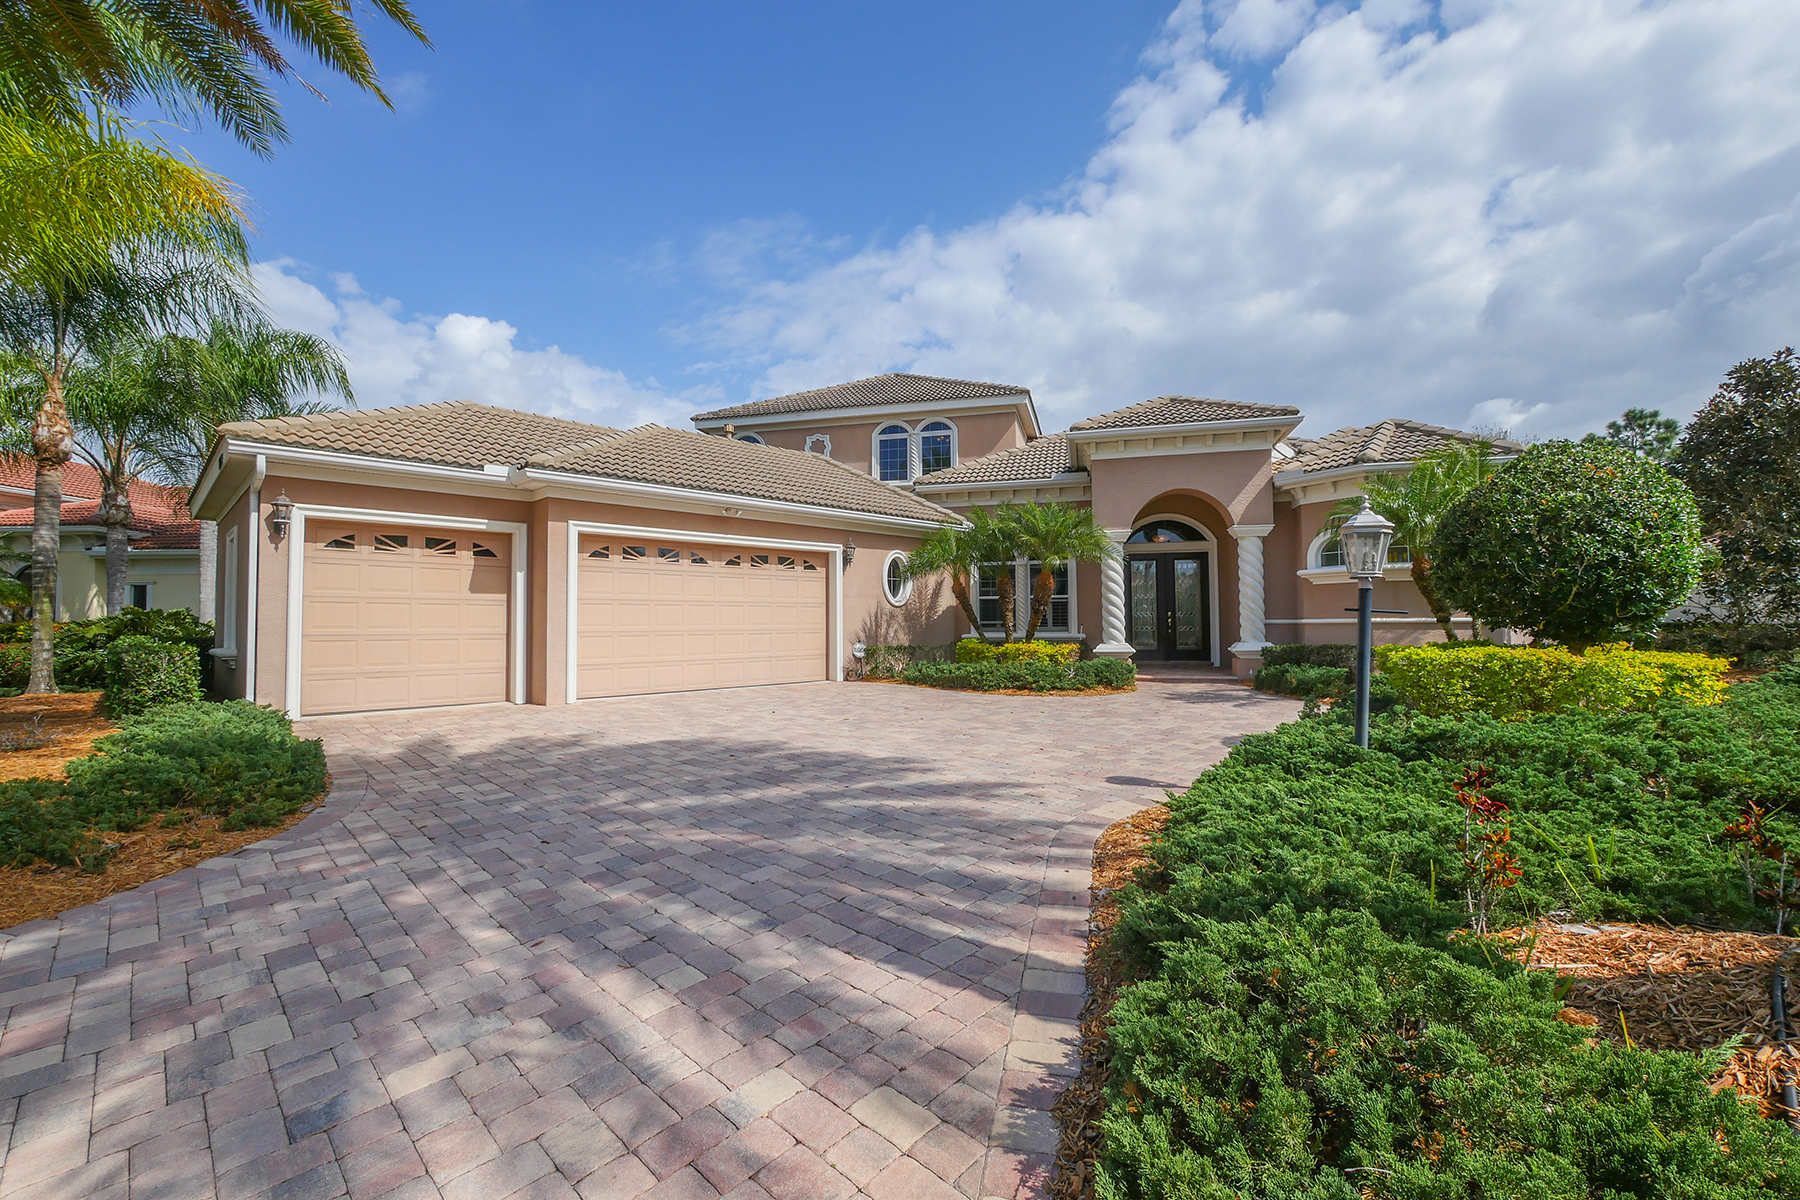 Single Family Home for Sale at LAKEWOOD RANCH COUNTRY CLUB 13315 Lost Key Pl Lakewood Ranch, Florida, 34202 United States